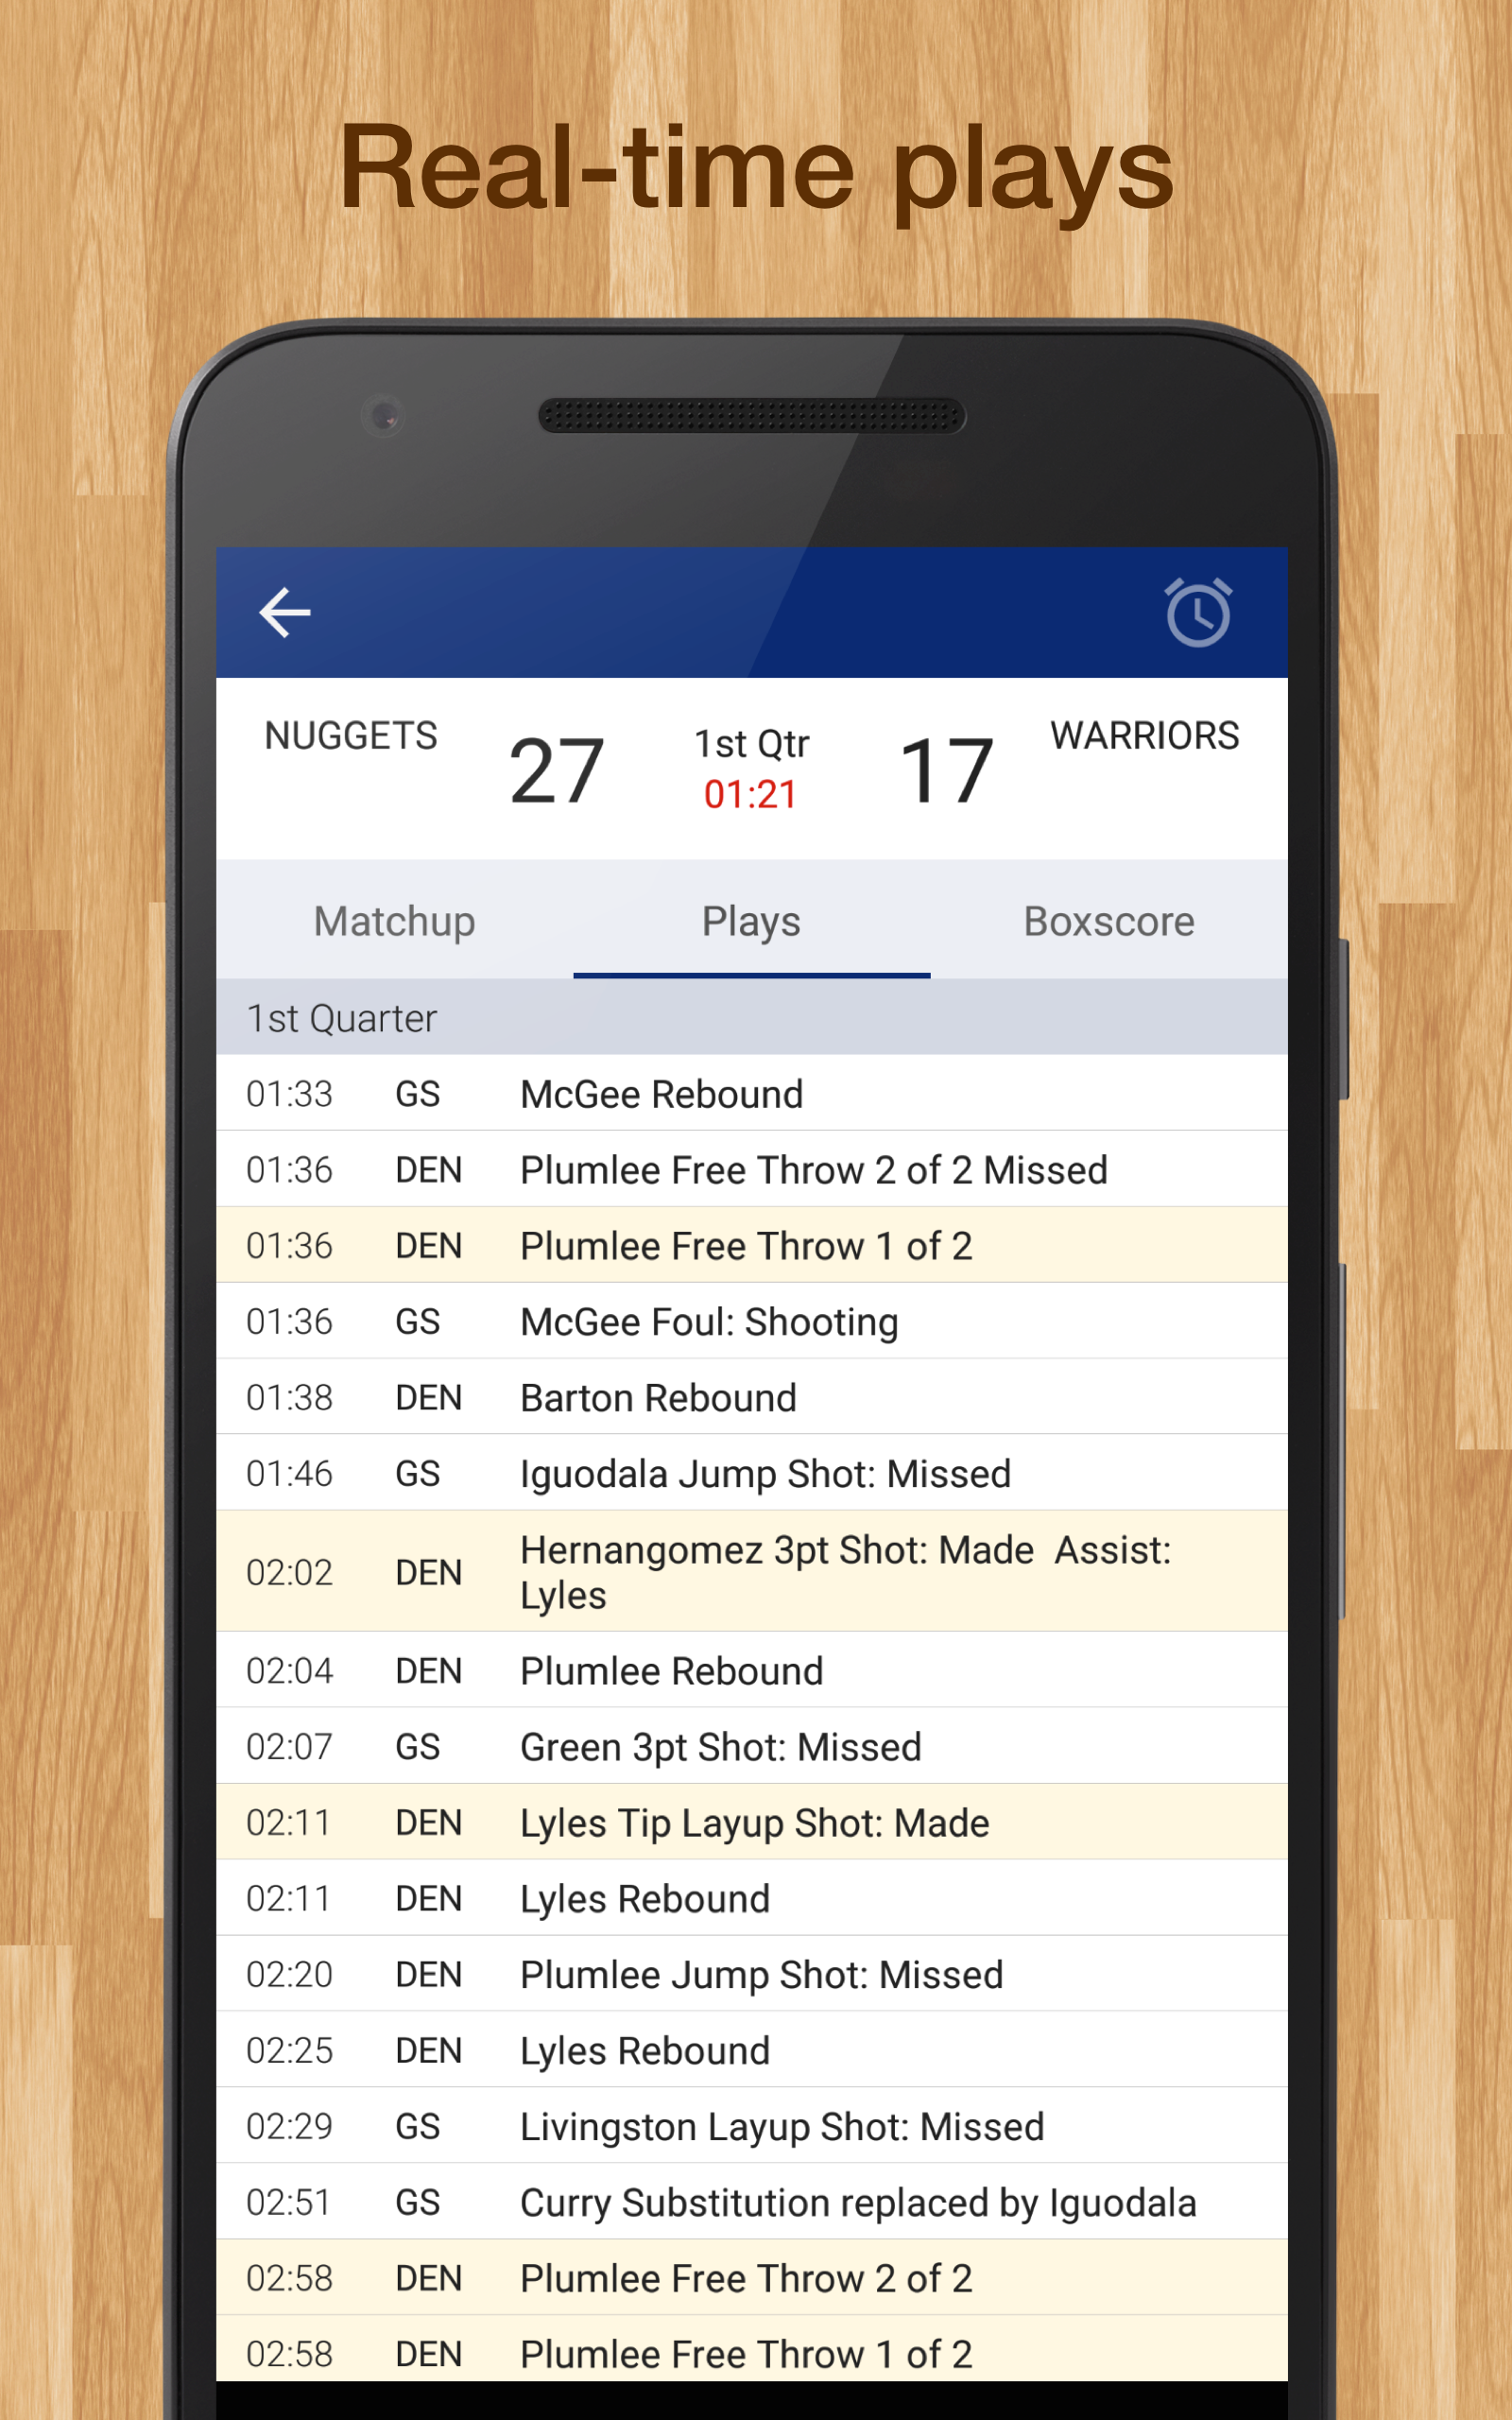 Basketball NBA Live Scores, Stats, Plays, & Results: Amazon.com.au: Appstore for Android - 웹